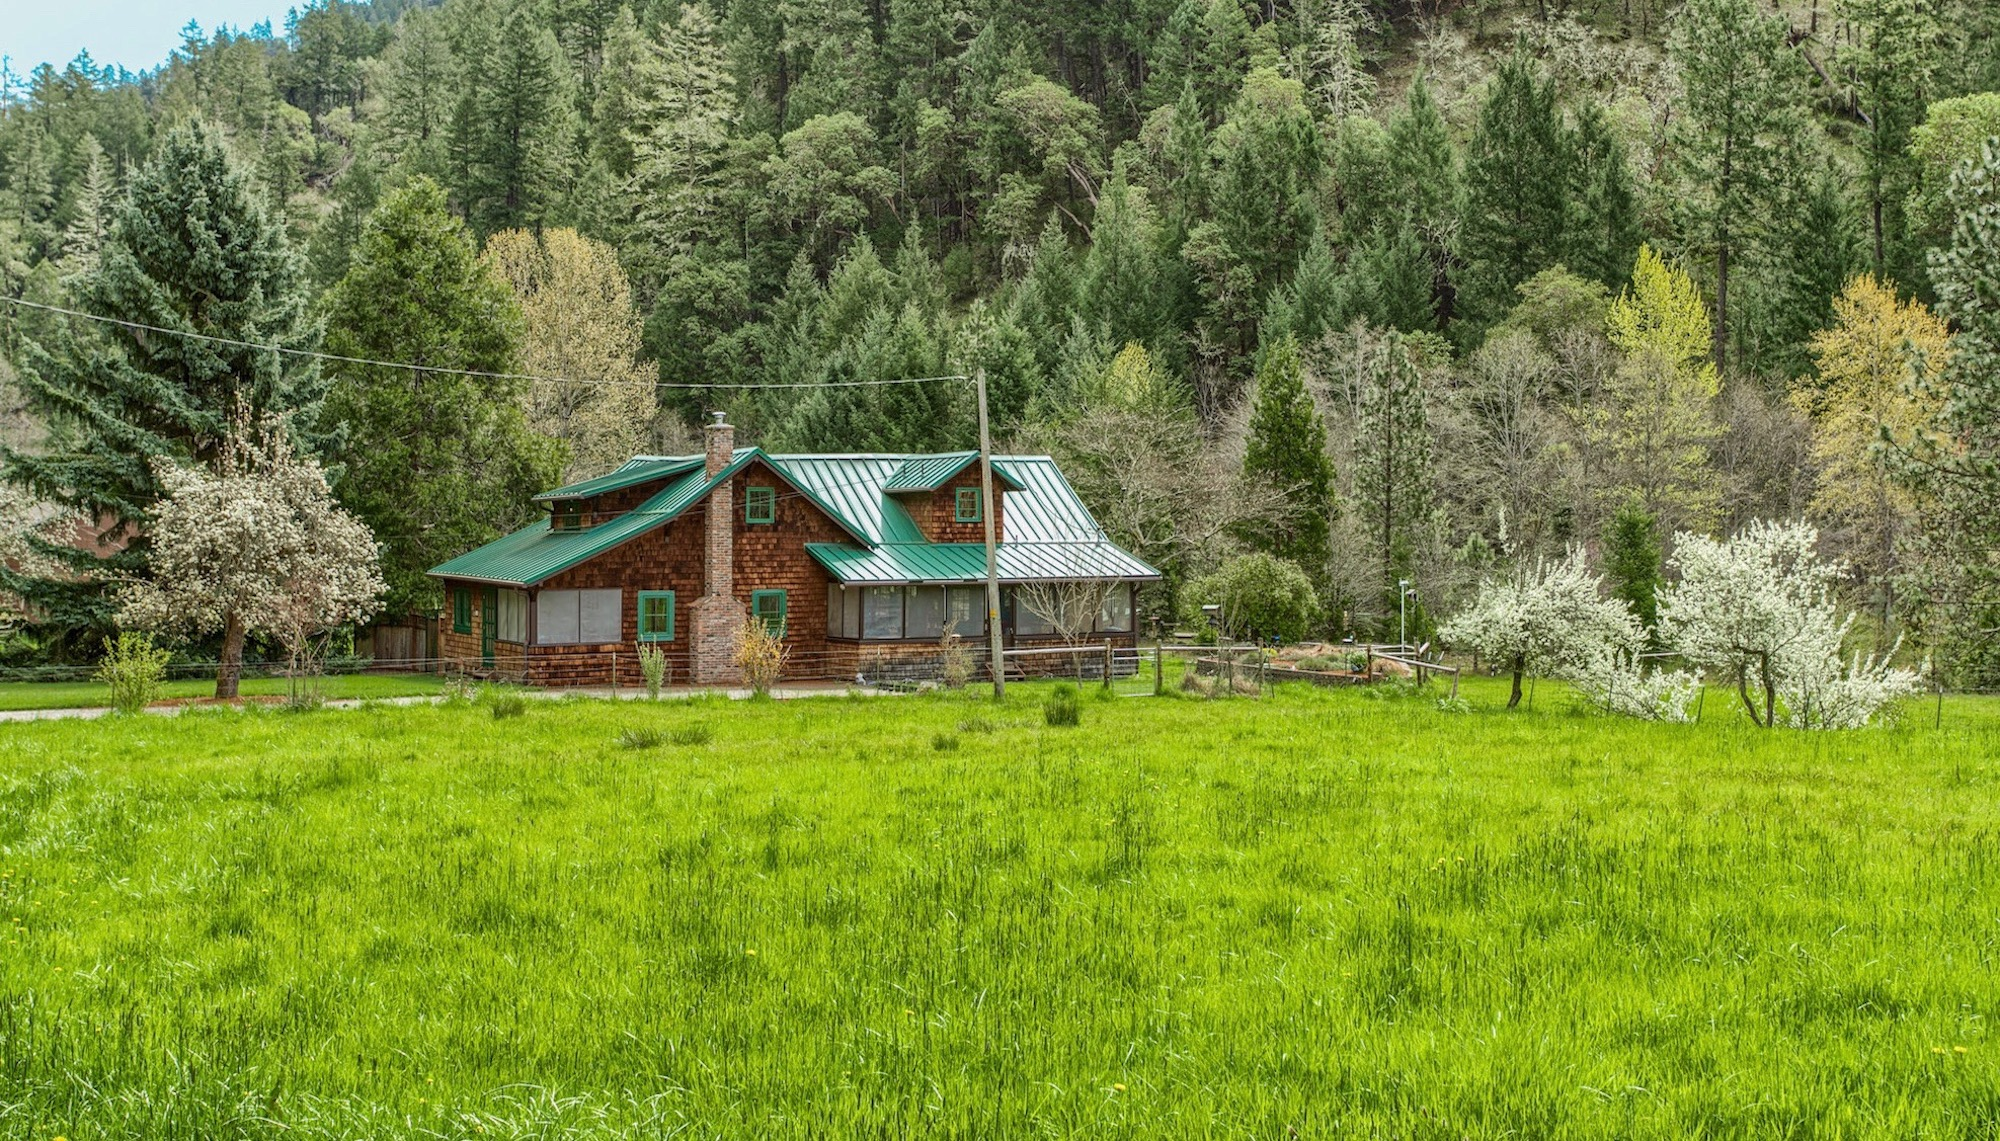 Rogue Valley Homes for sale